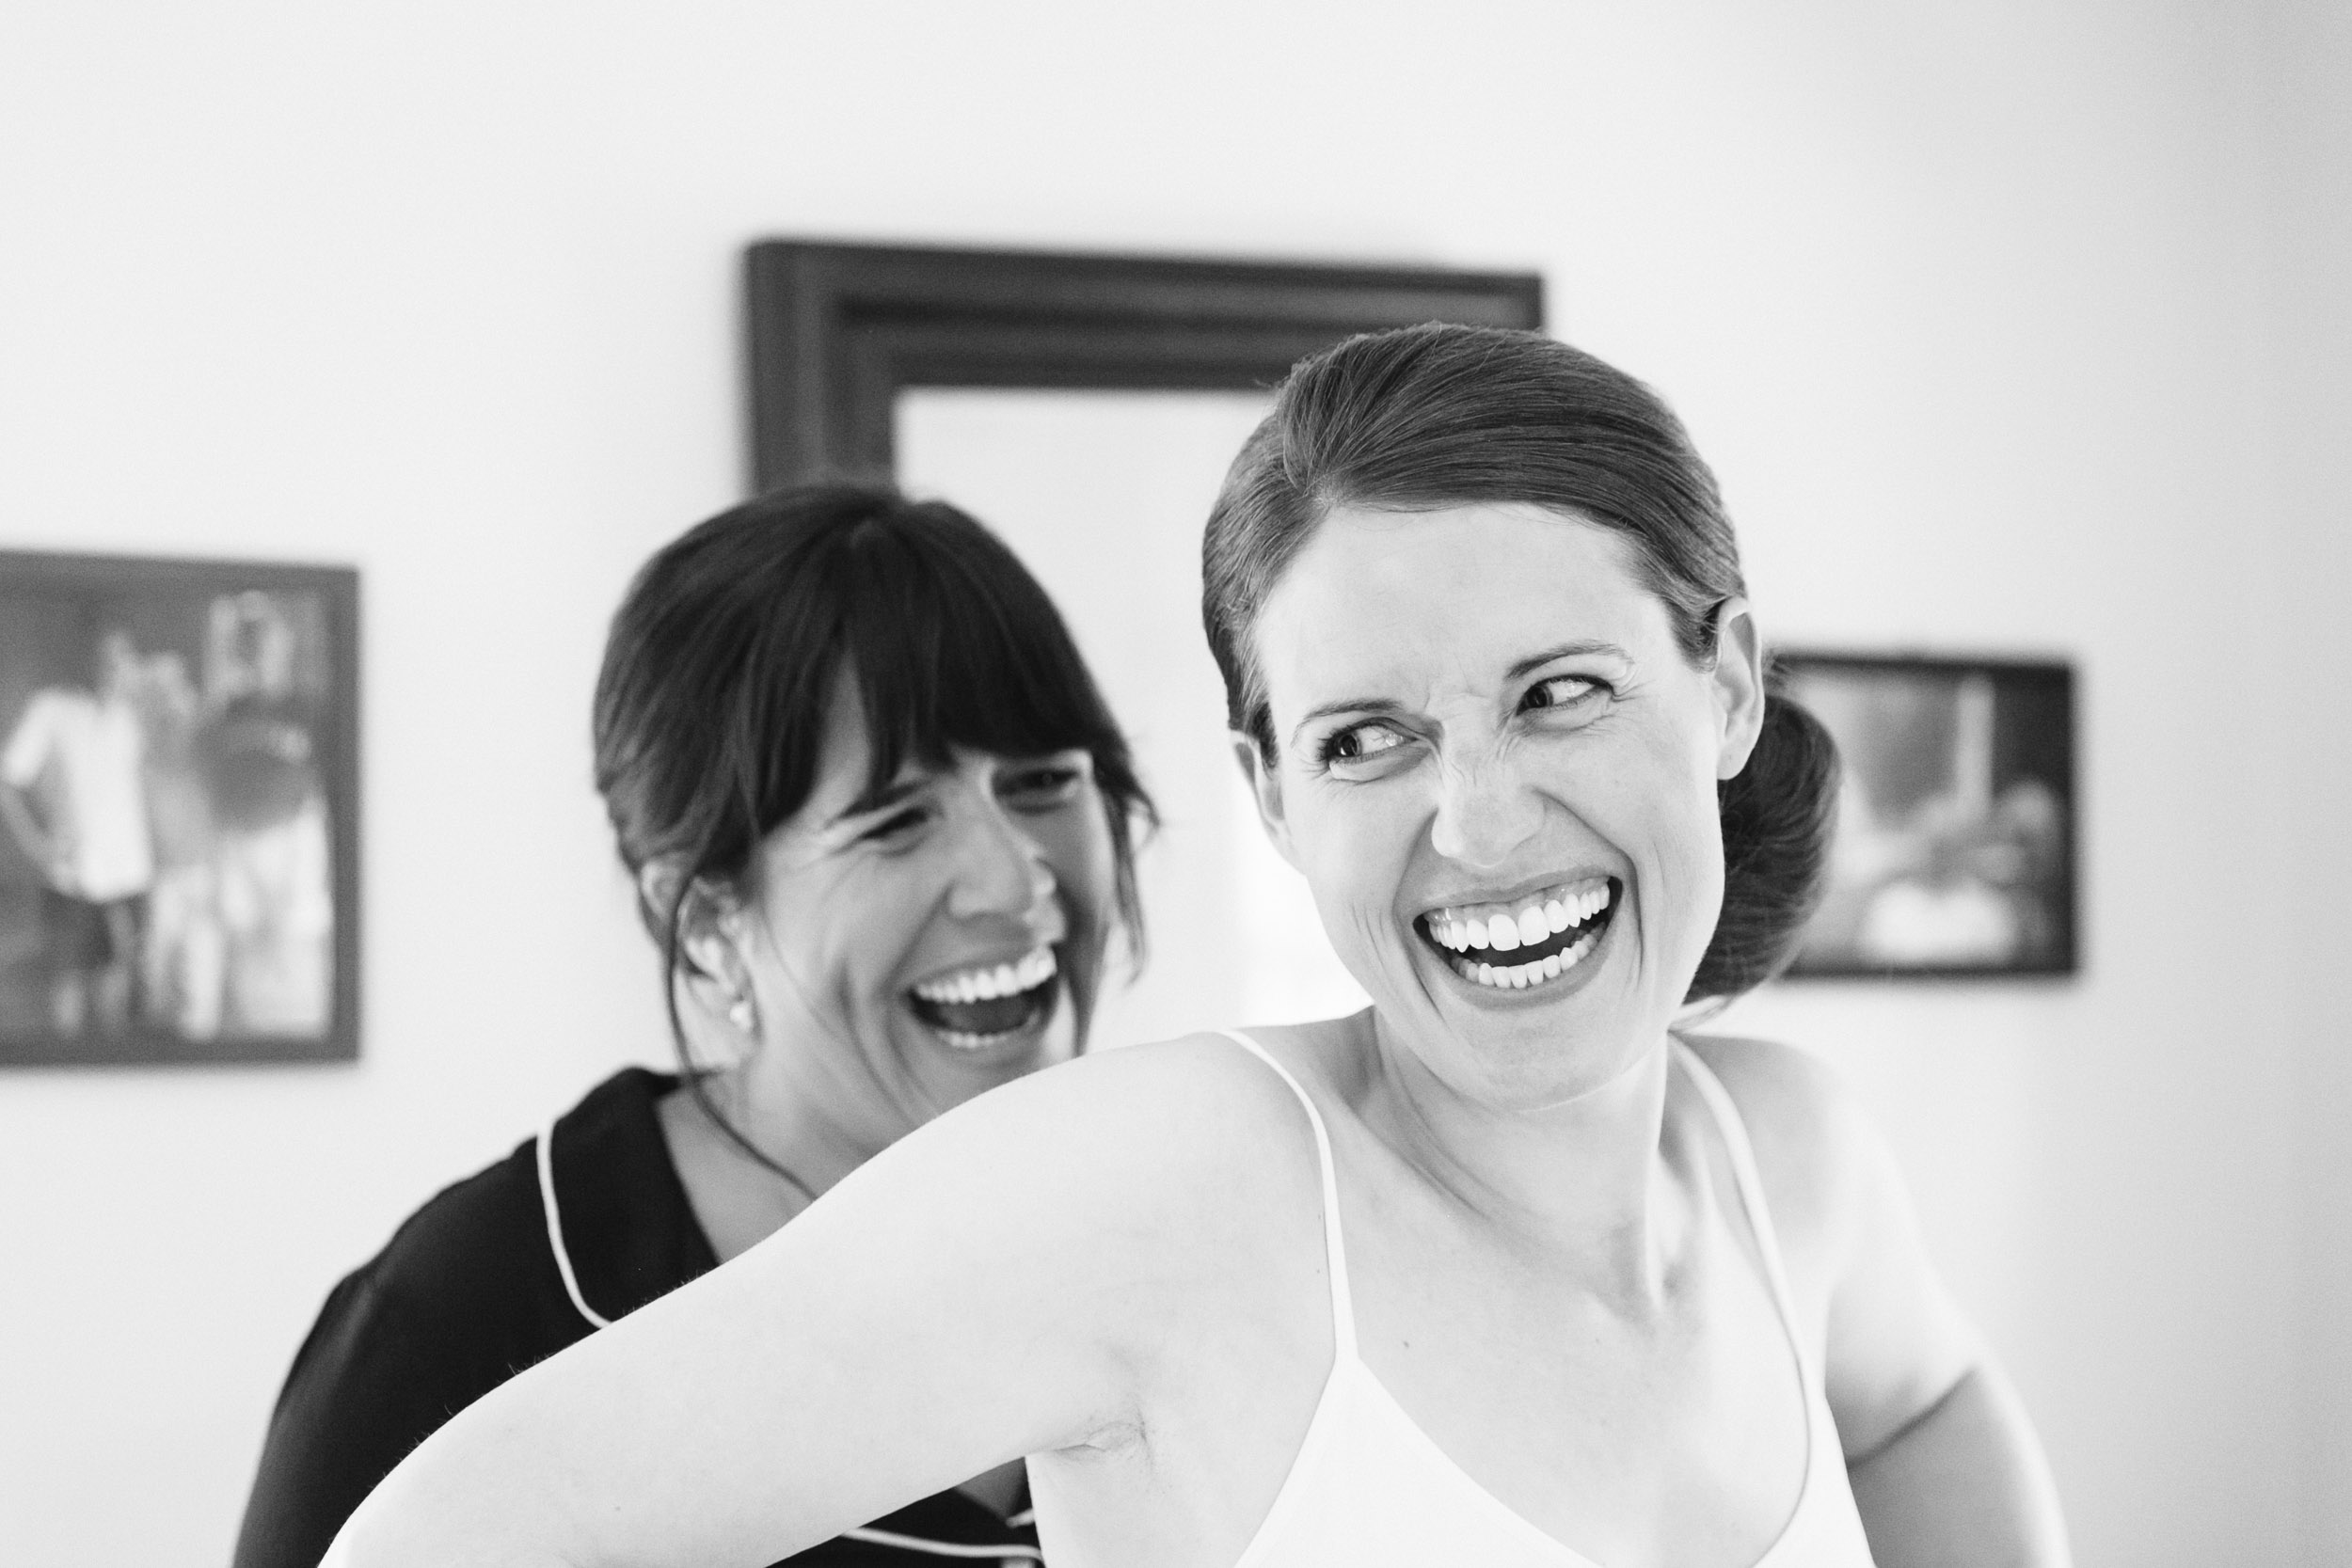 008_The best wedding photography from Jackson Hole, Wyoming and beyond by photographer Hannah Hardaway.jpg